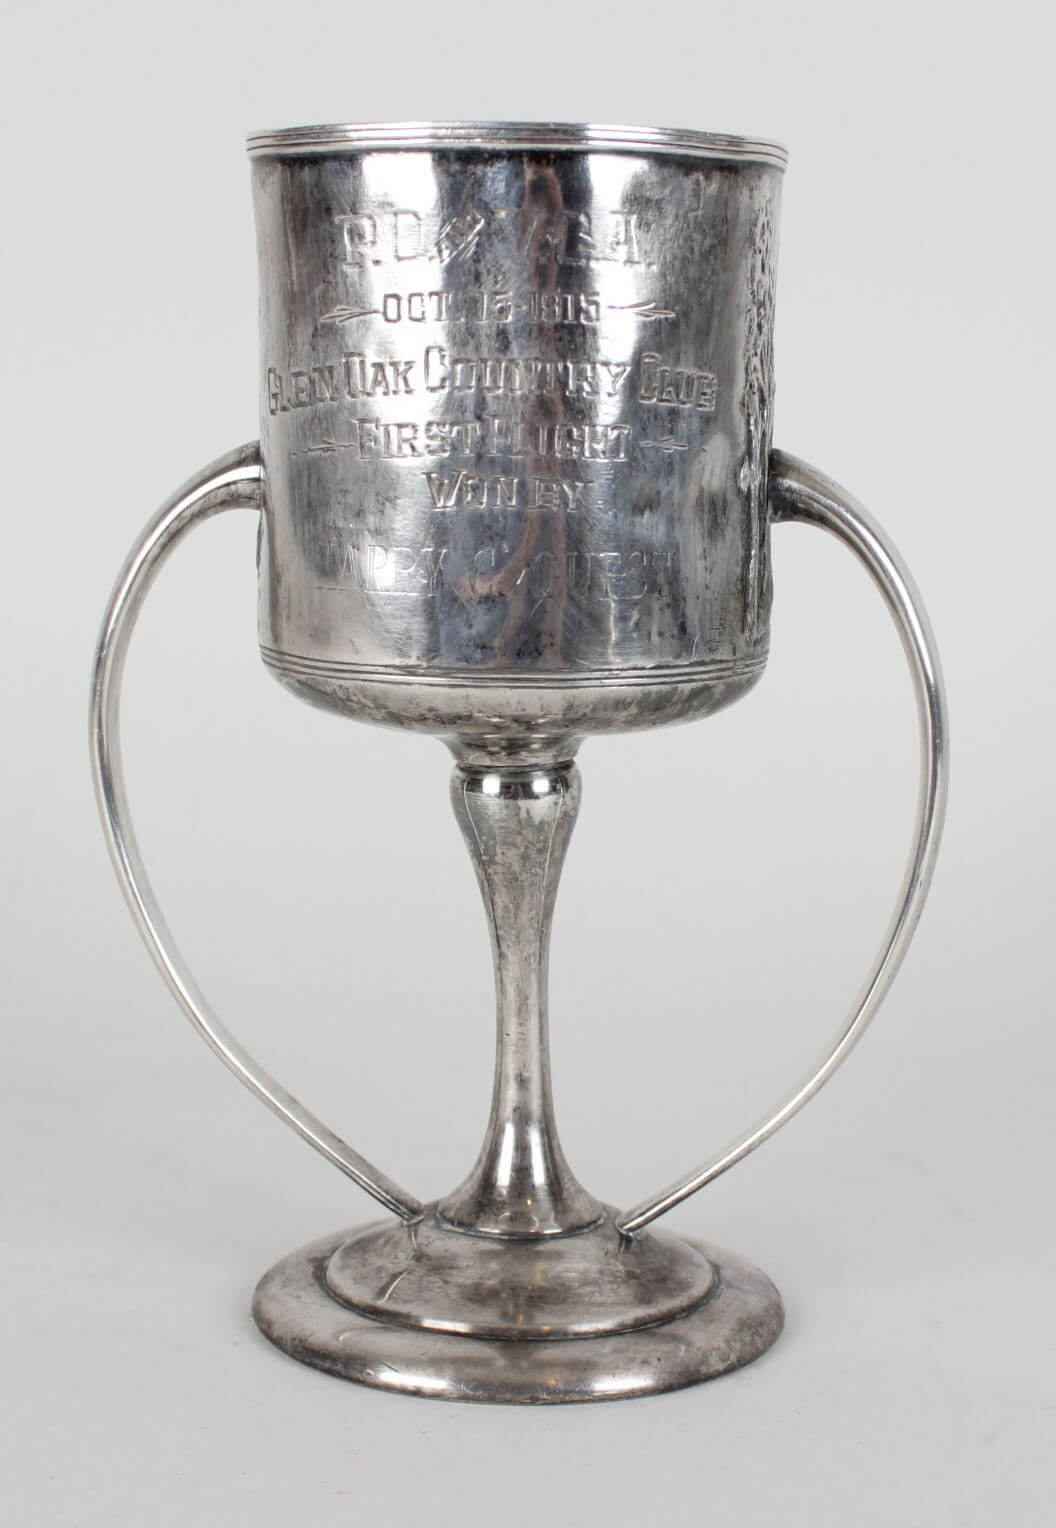 1915 Glen Oaks Country Club Sterling Silver First Flight Golf Trophy Won by Harry C. Quest